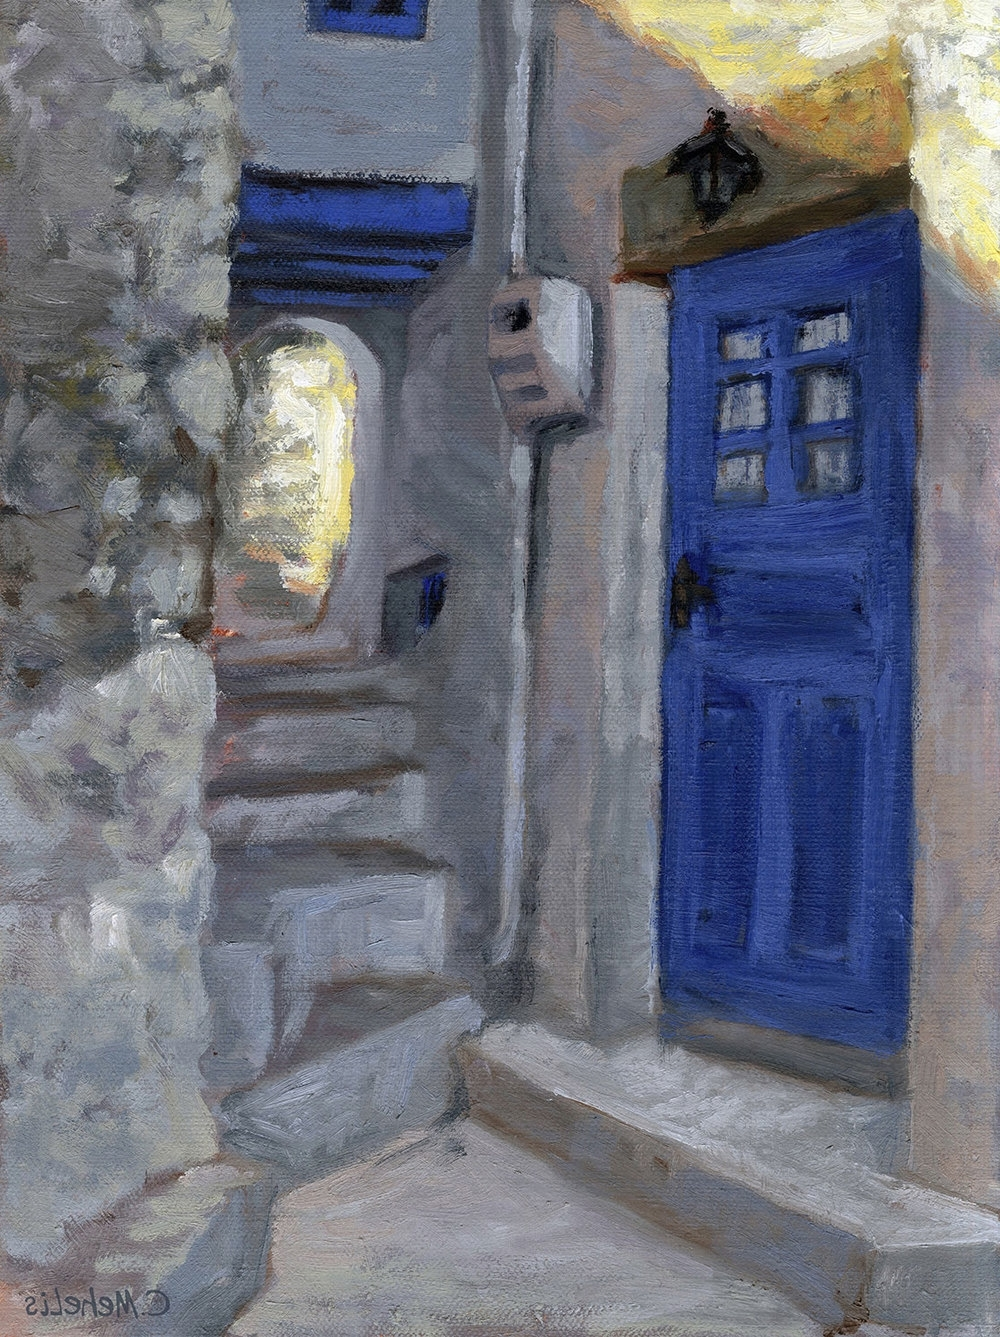 Most Popular About Meart With A Greek Sensibilityabout Me — Christina Mehelis With Regard To Greece Canvas Wall Art (View 13 of 15)